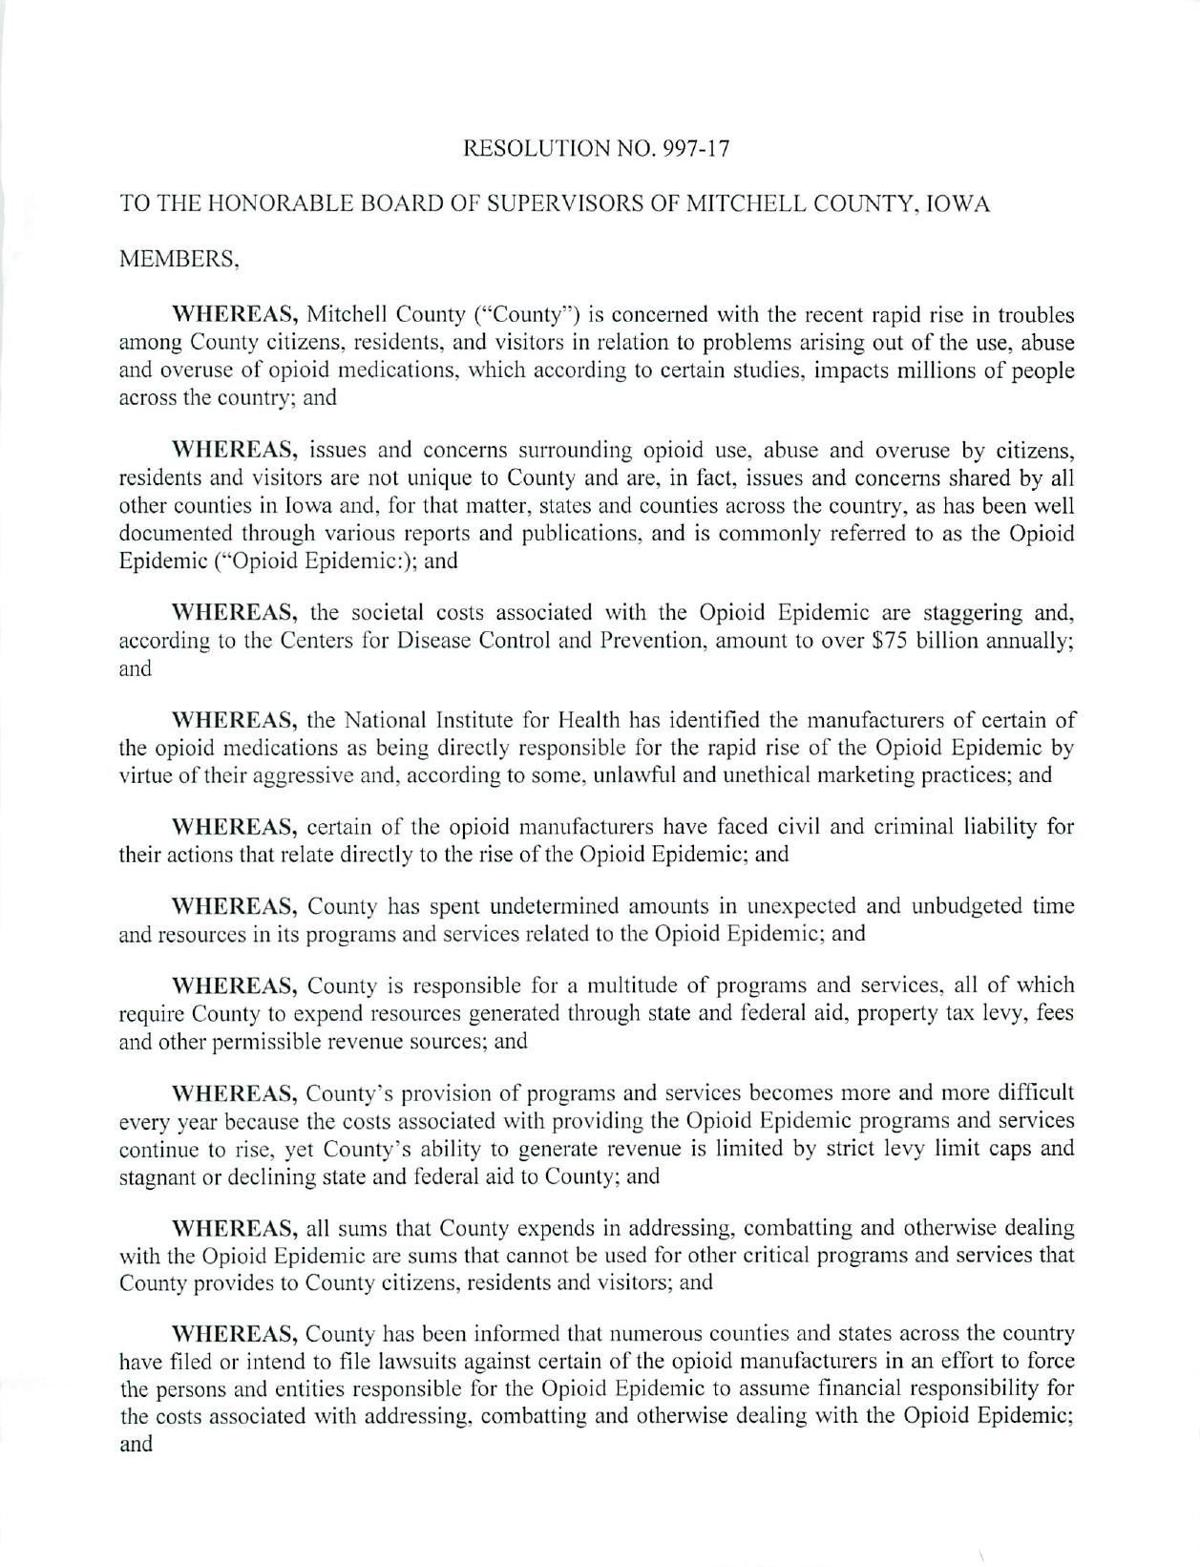 Mitchell County BOS resolution